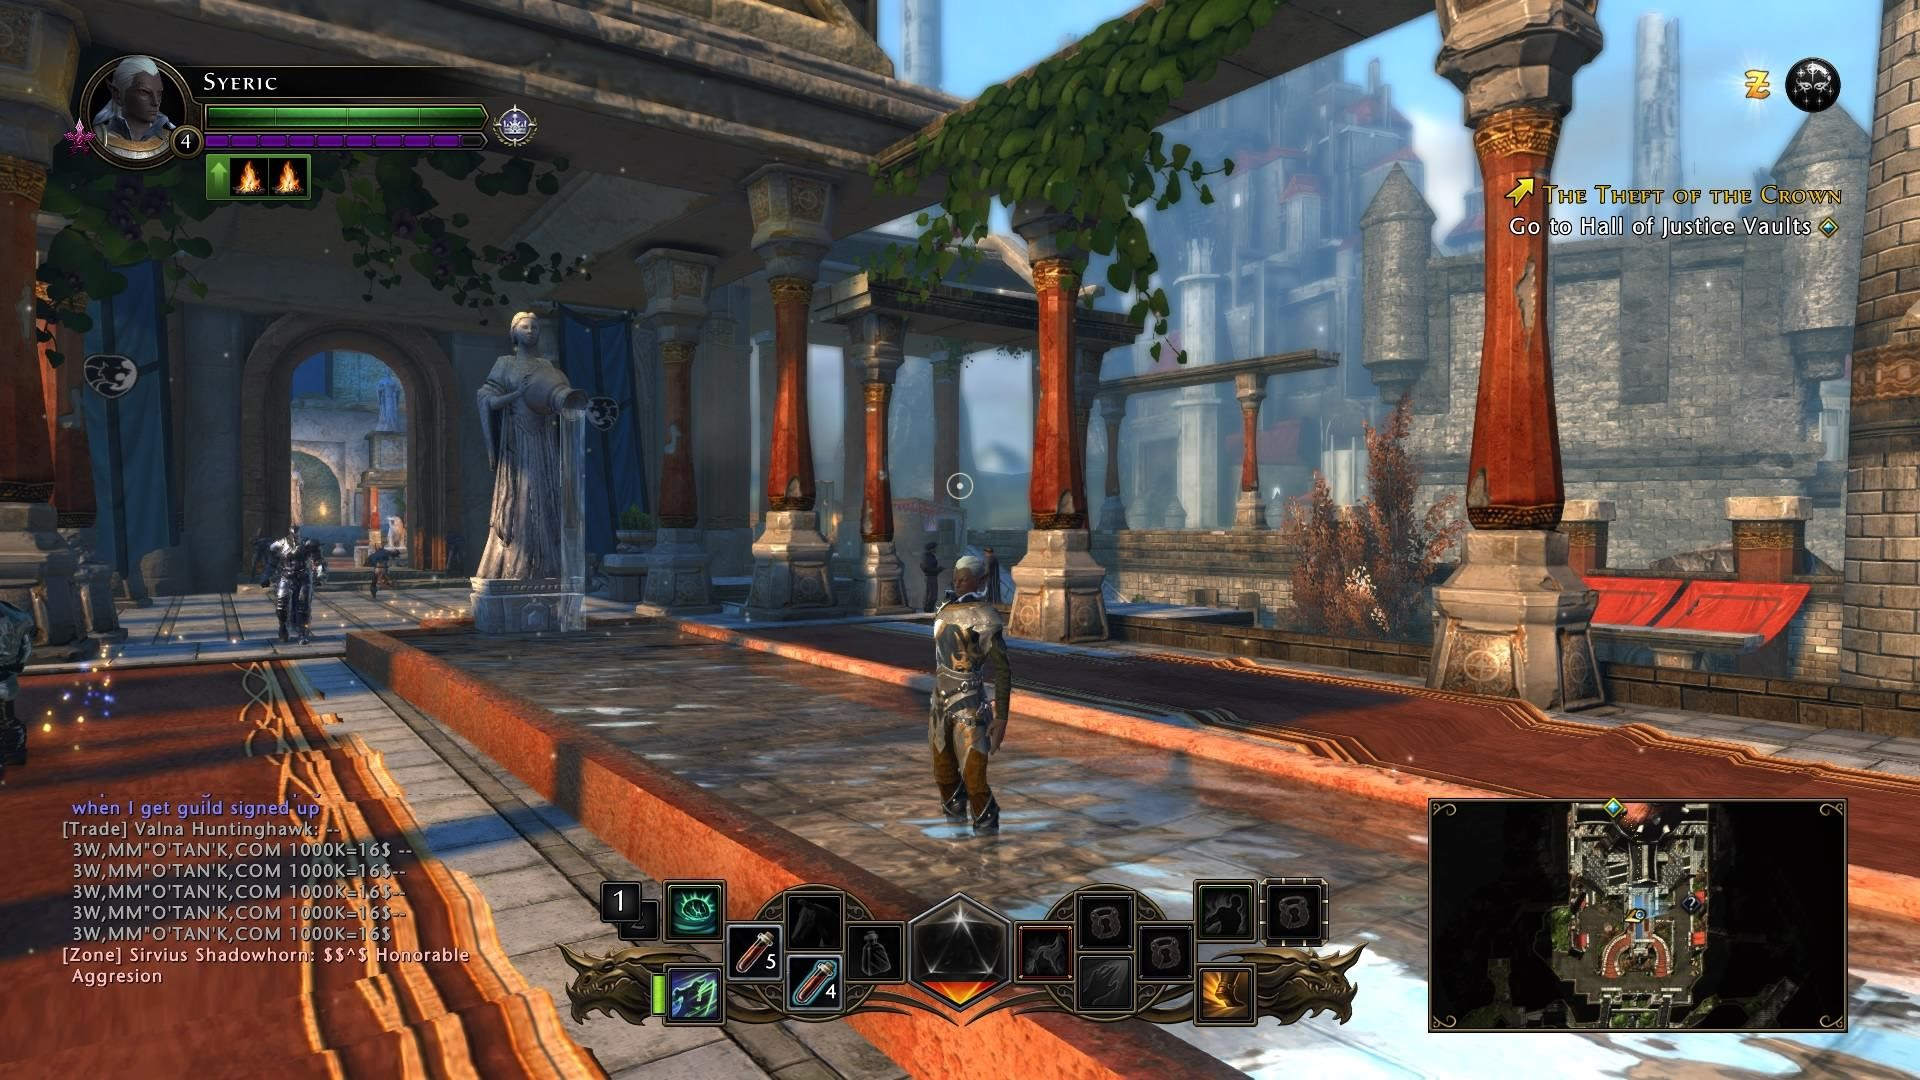 Neverwinter's visual fidelity is scaled back for PS4 over PC